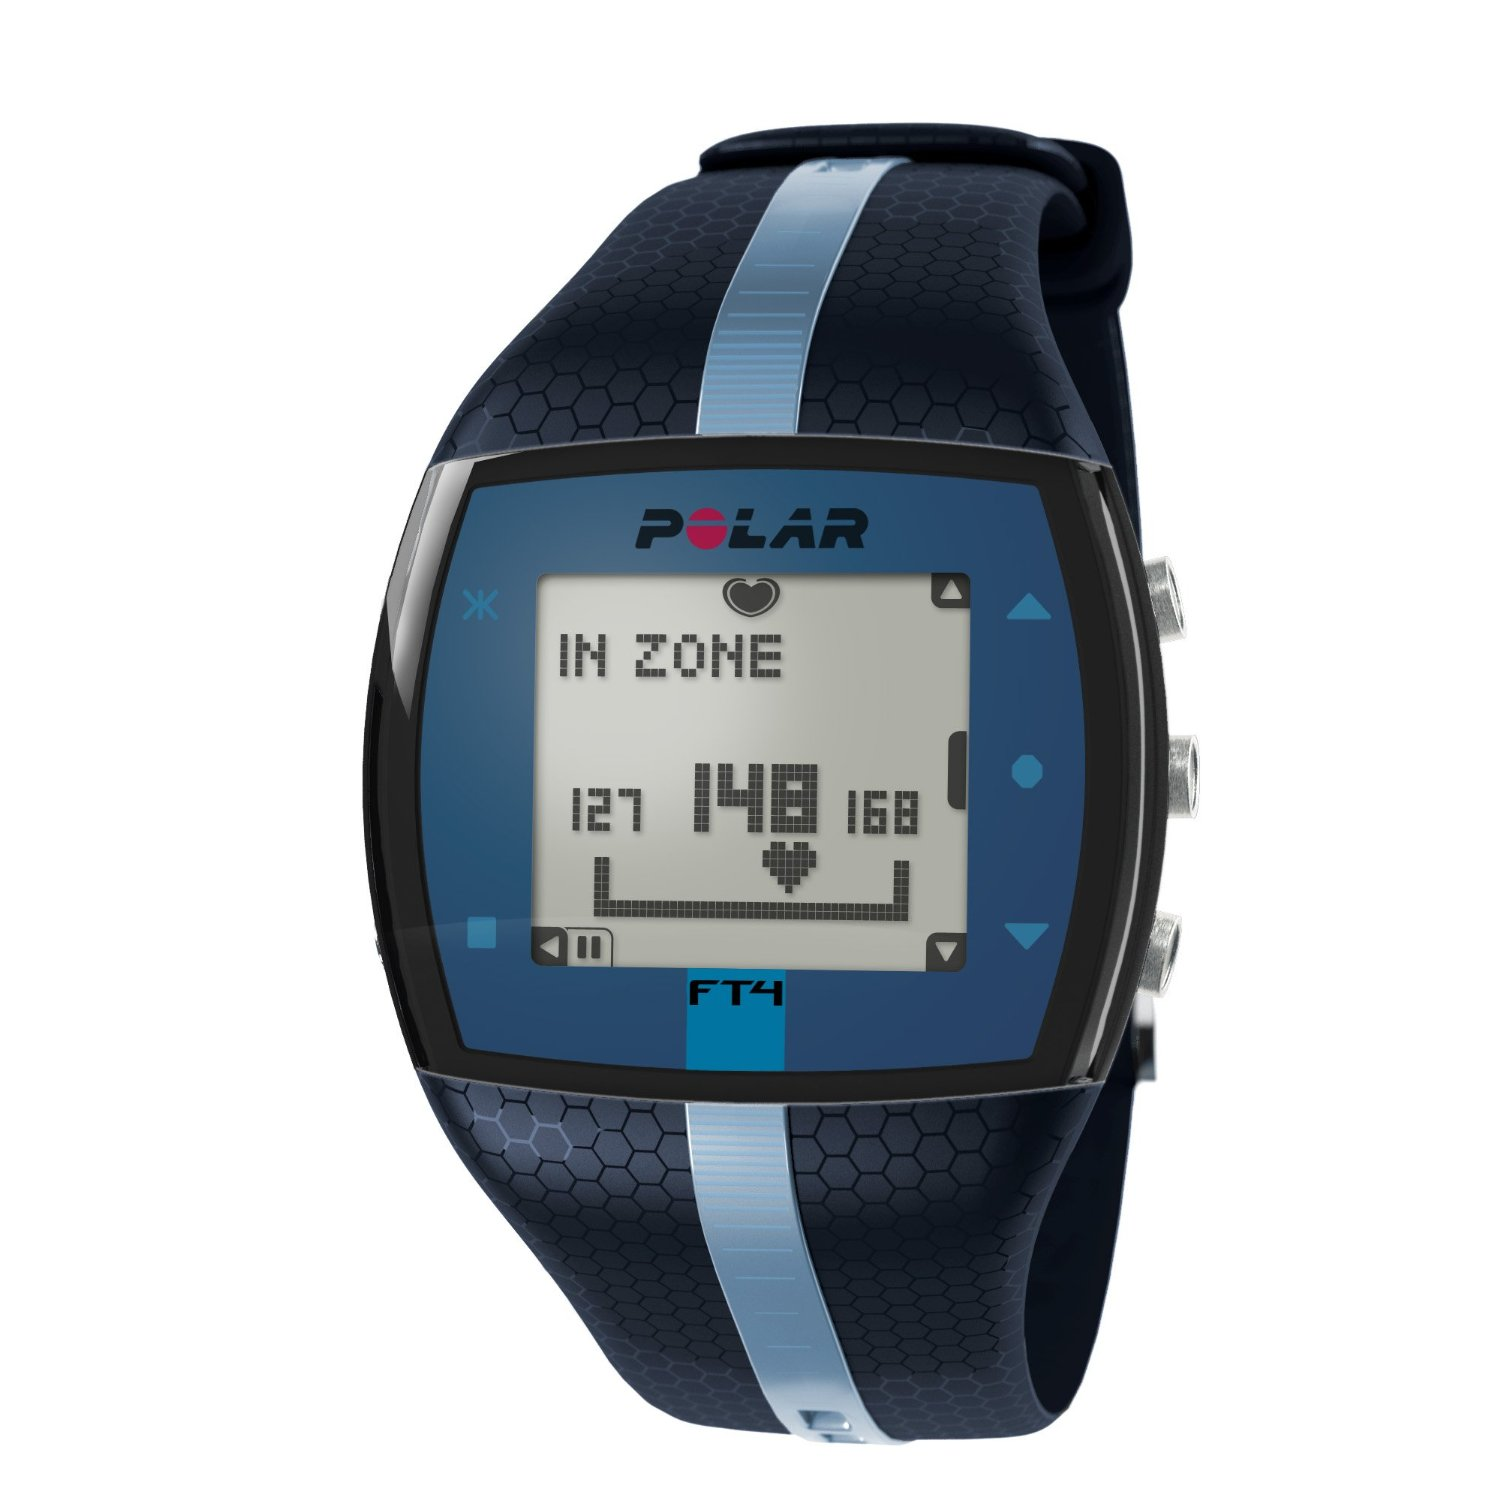 Polar Heart Rate Monitor Battery : Gift search polar heart rate monitor watch